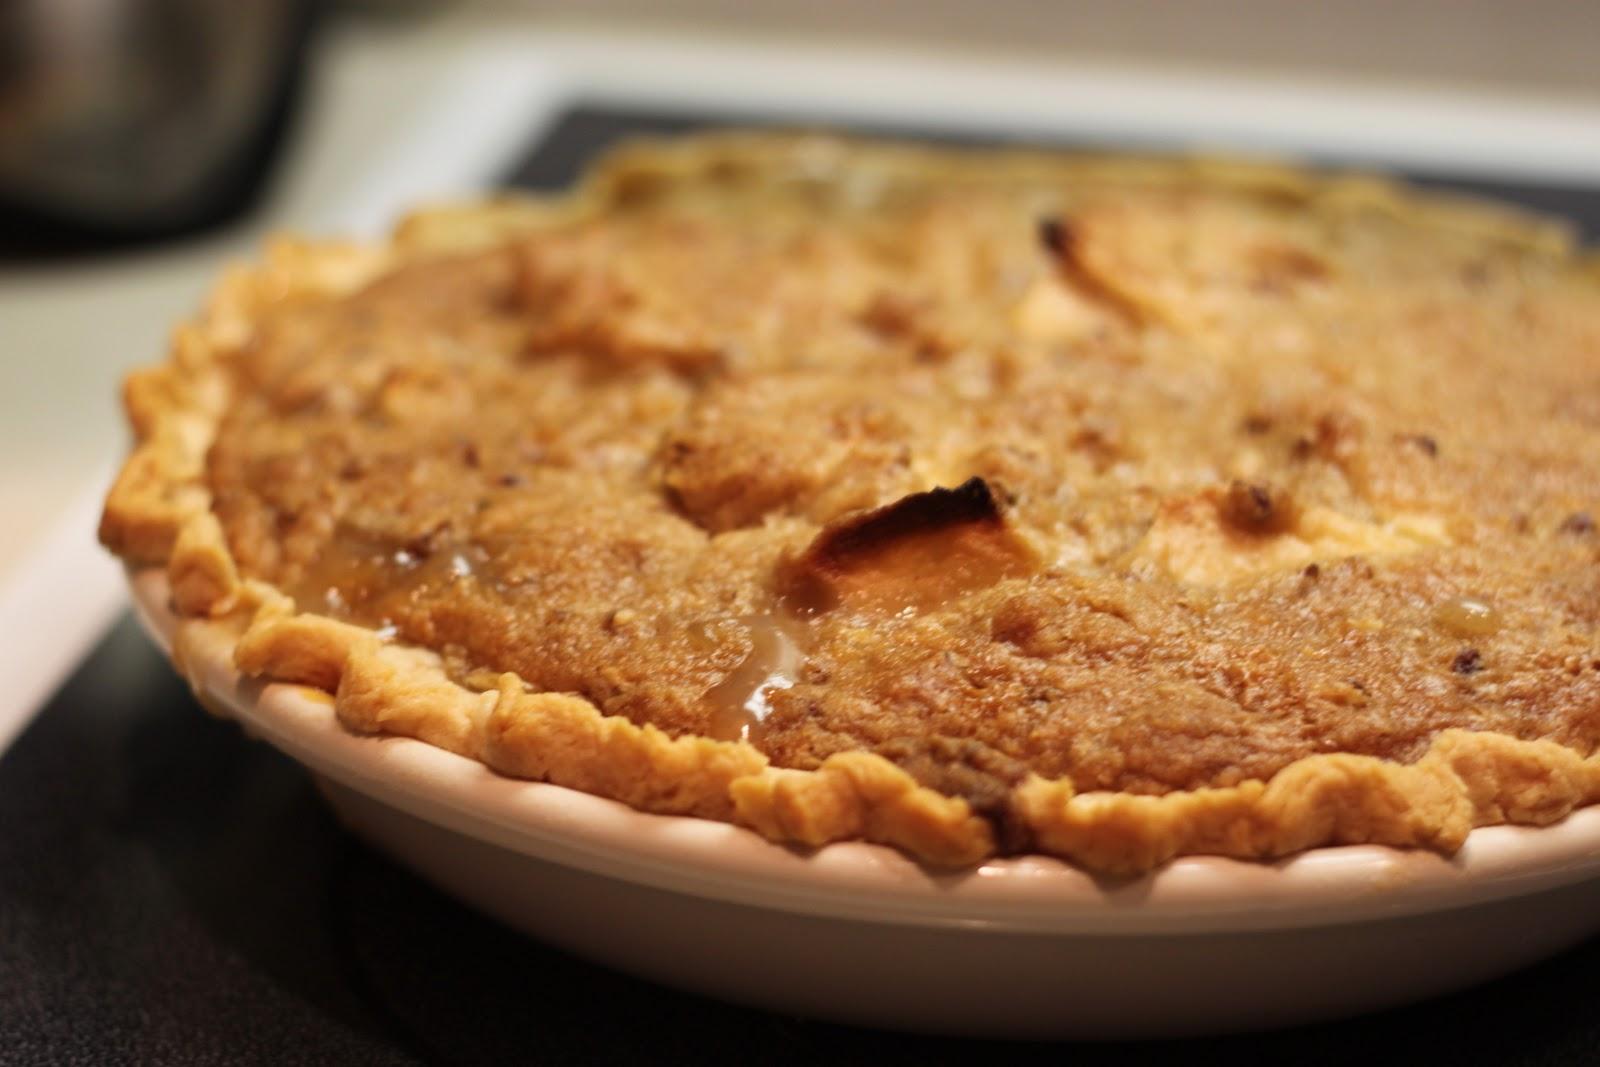 Confections from the Cody Kitchen: Dreamy Apple Pie